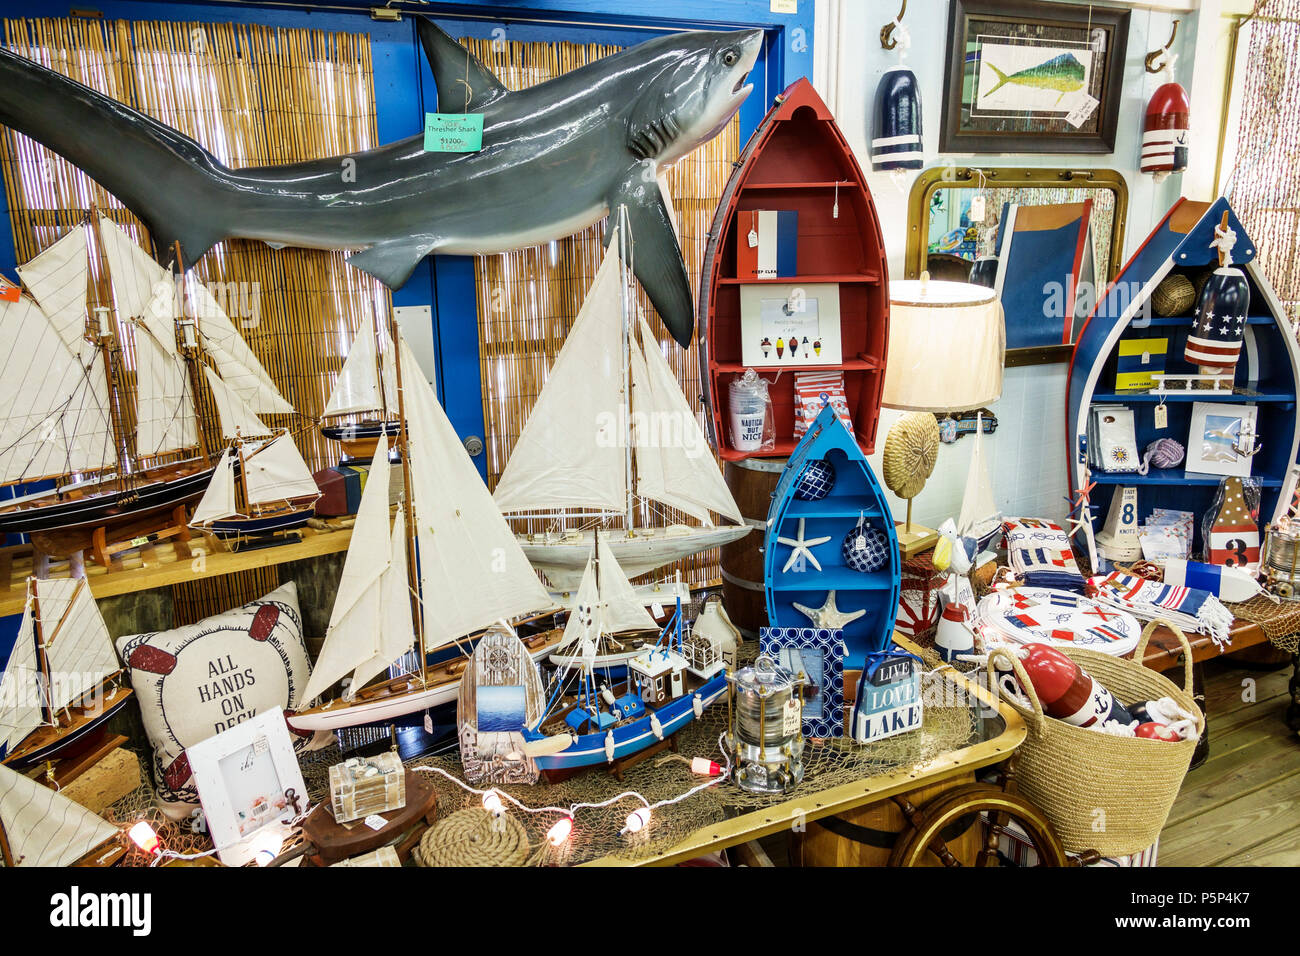 Nautical House Decor Stuart Florida Nautical But Nice Shopping Souvenirs Display Sale